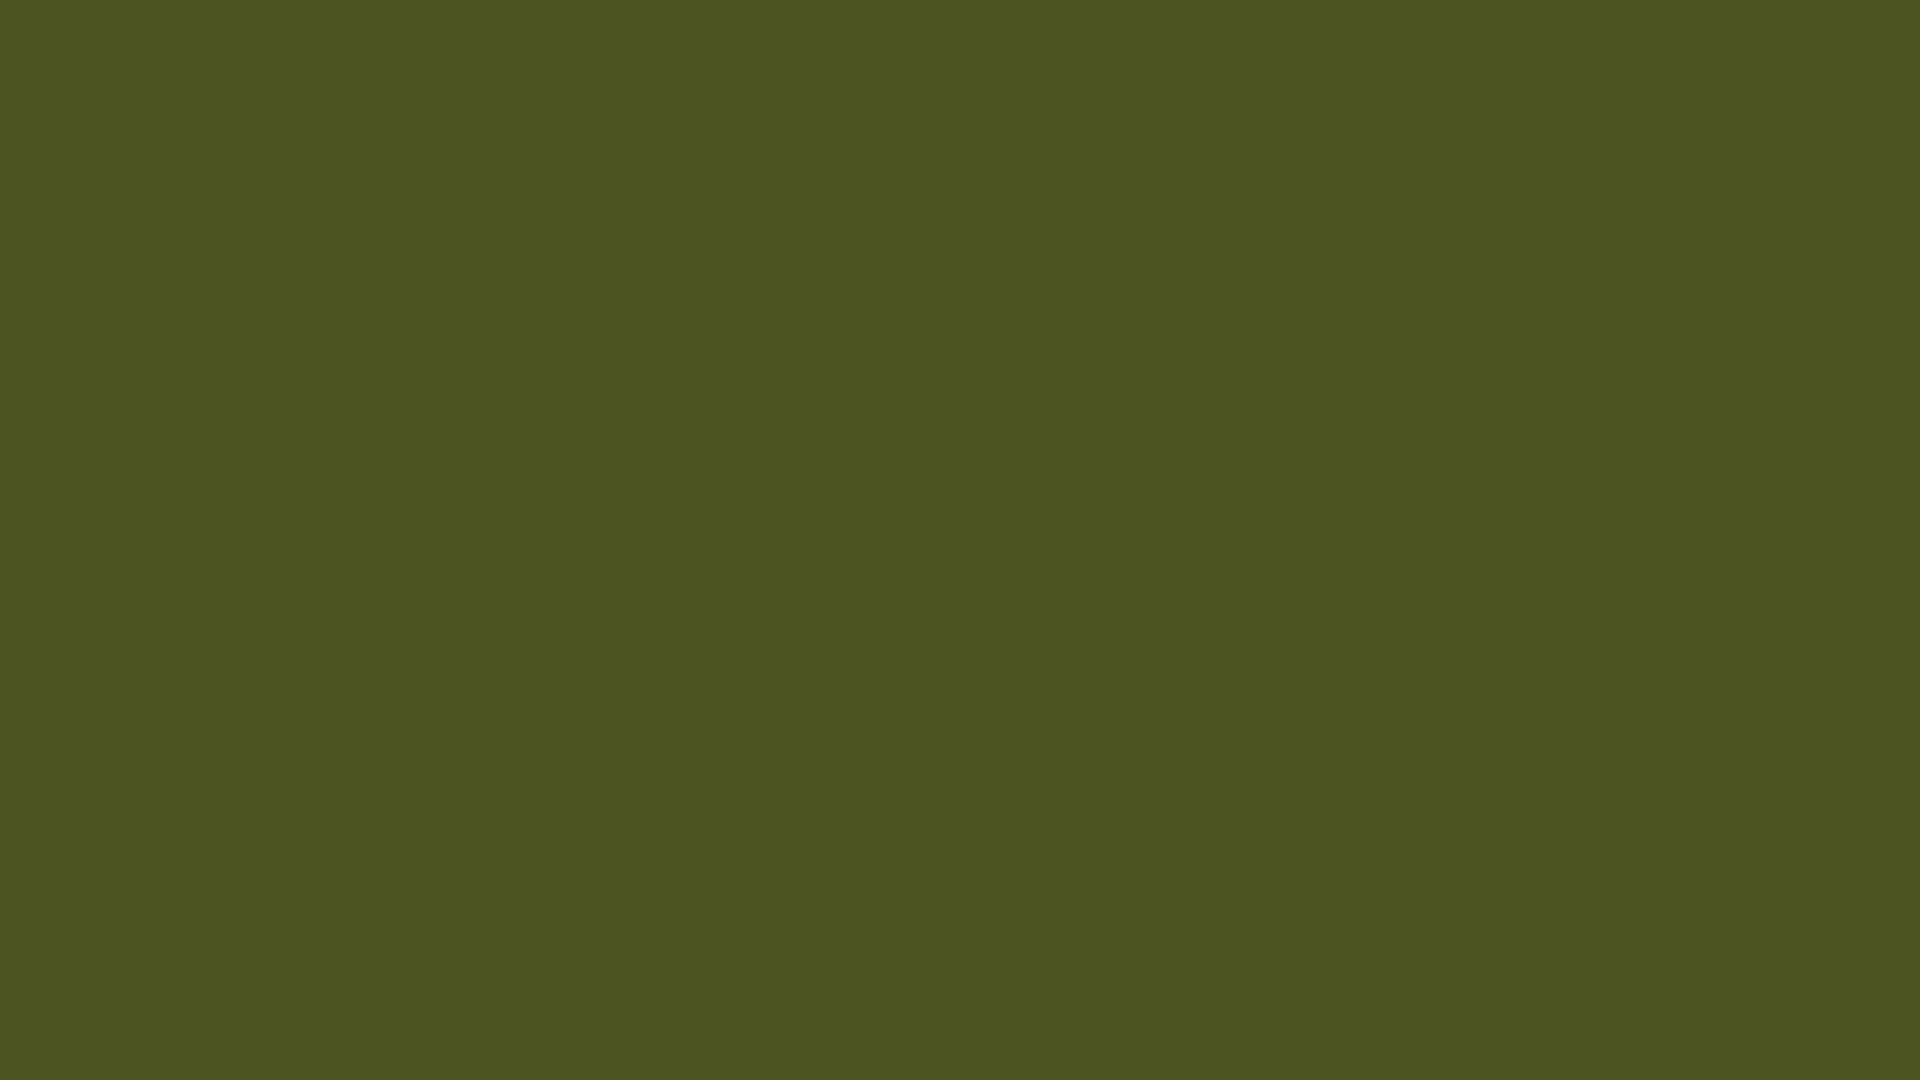 1920x1080 Army Green Solid Color Background 1920x1080